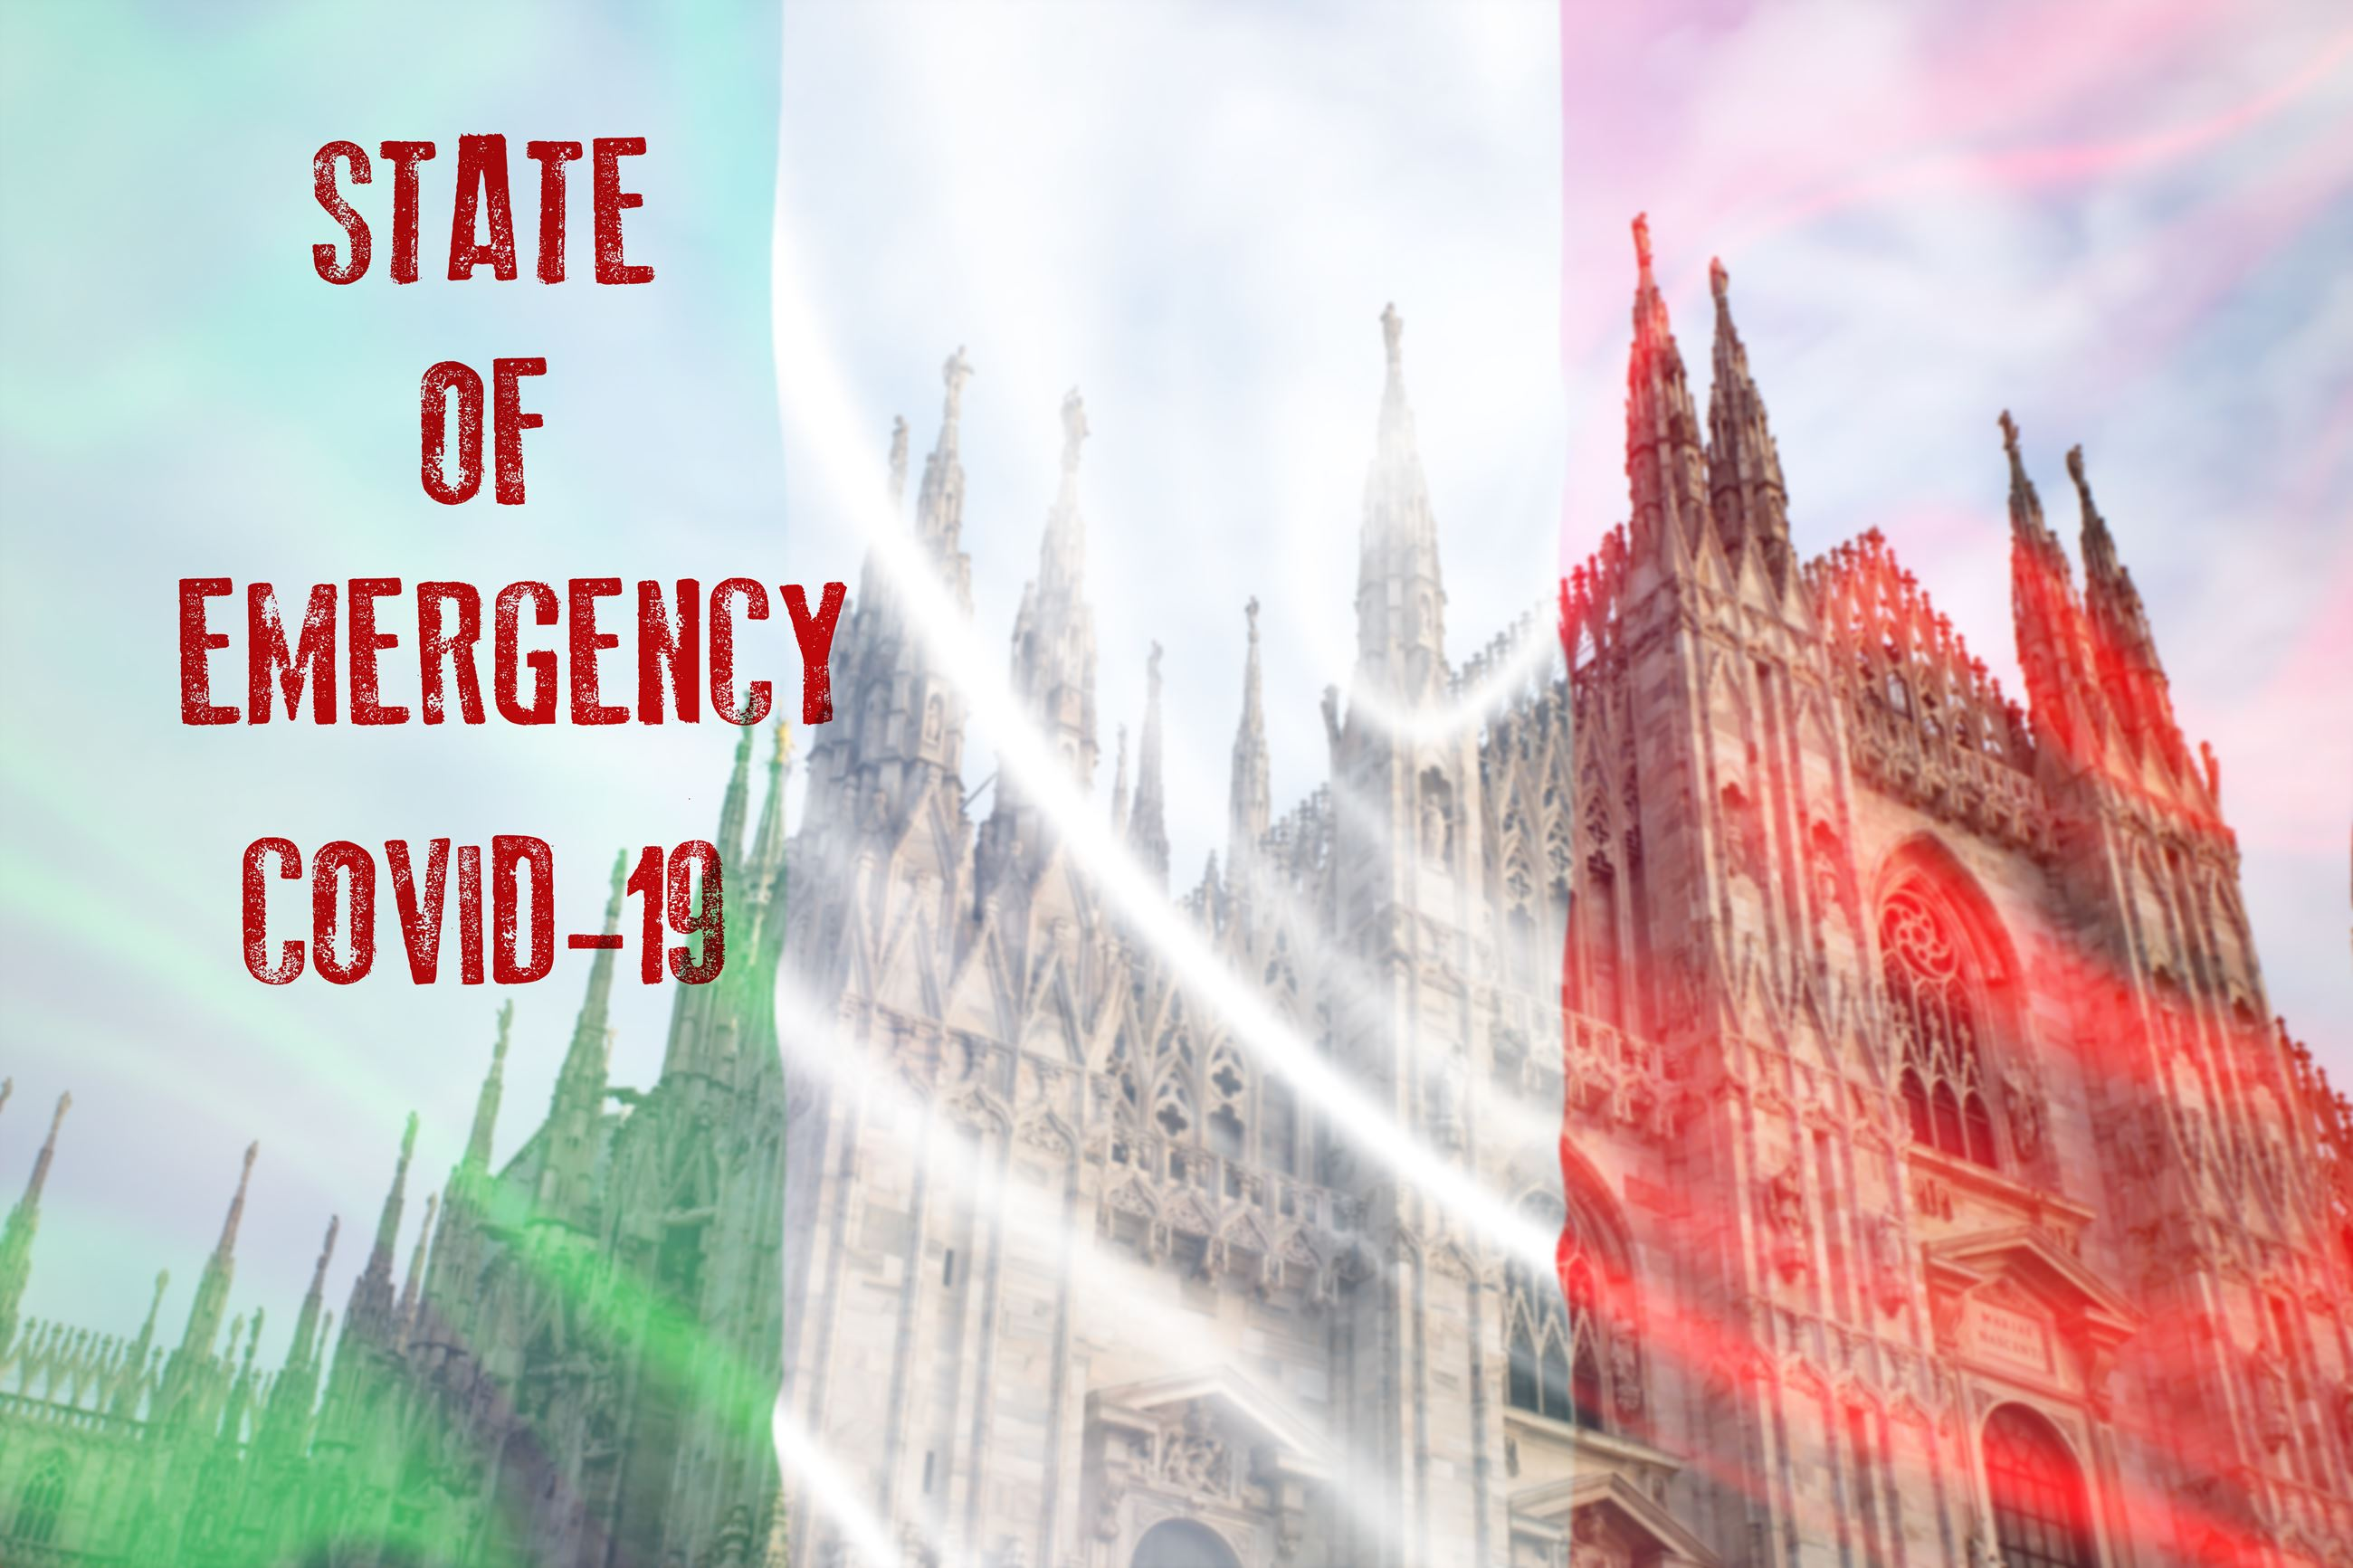 COVID-19 State of Emergency